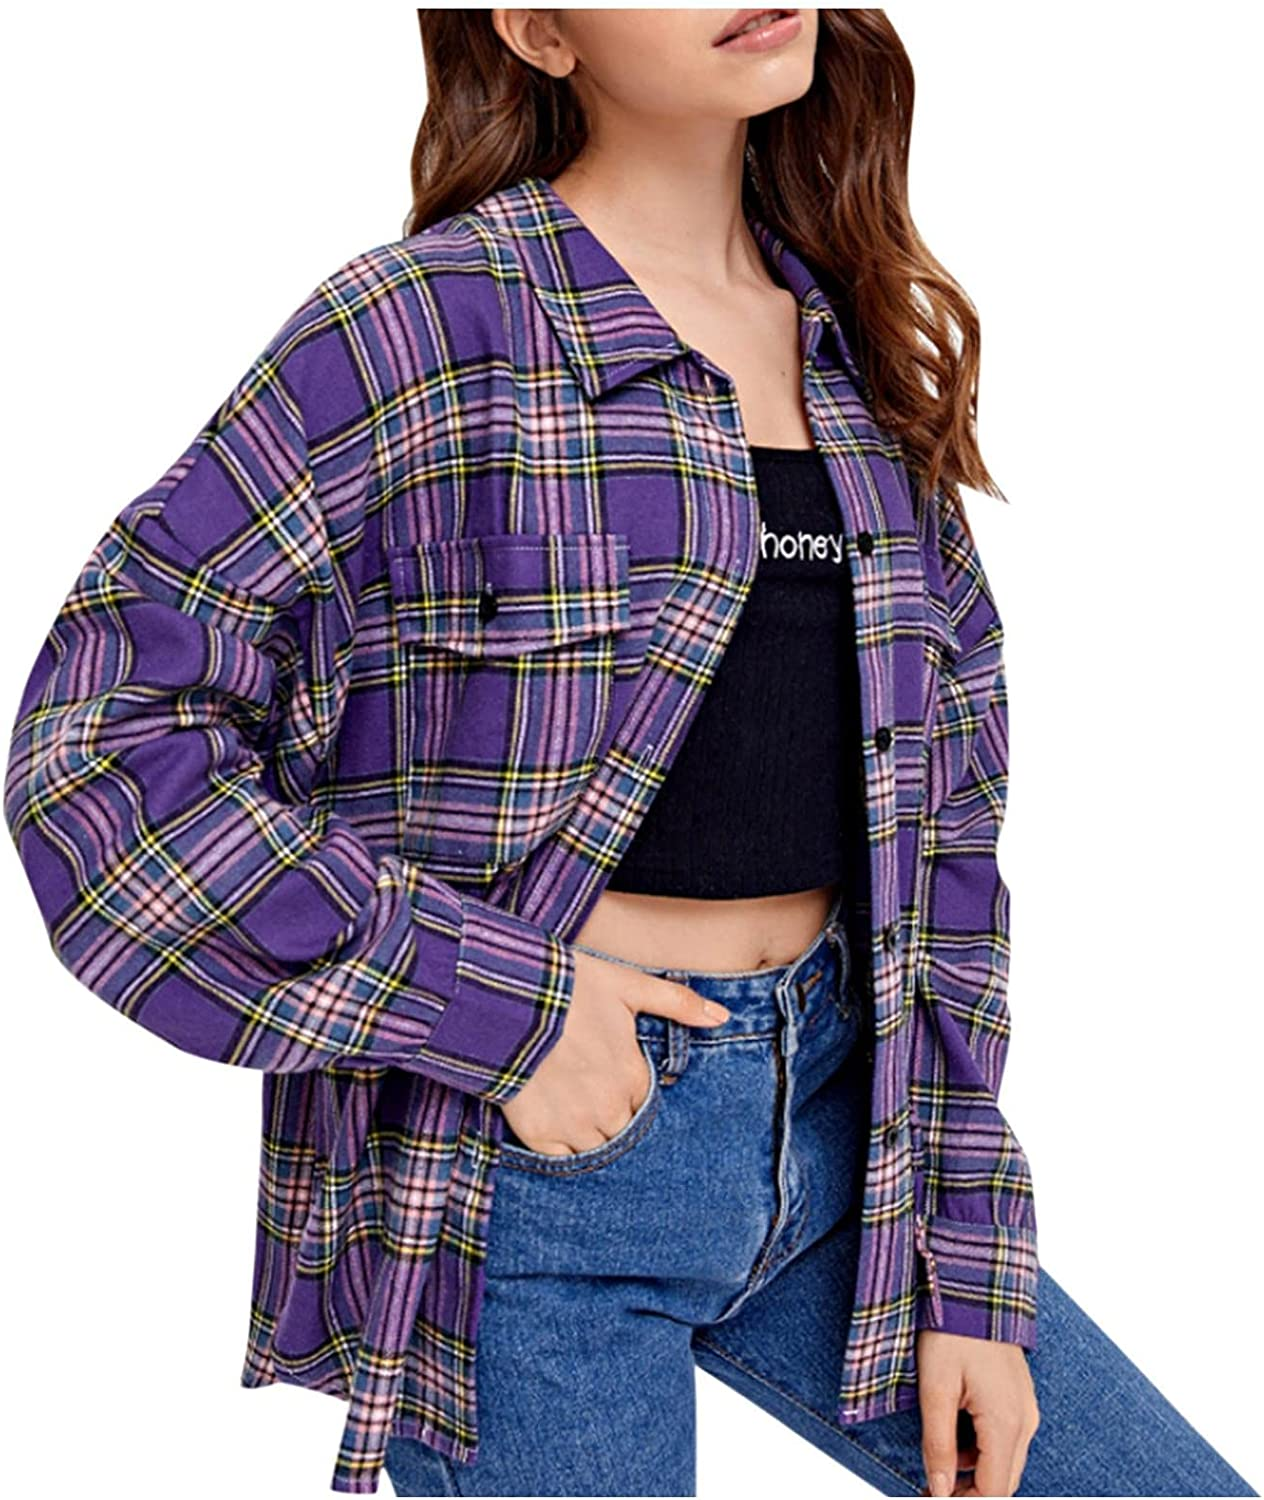 Plaid Shirts for Women, Long Sleeve Casual Loose Classic Checkered Button Down Shirt Lightweight Blouse Tops